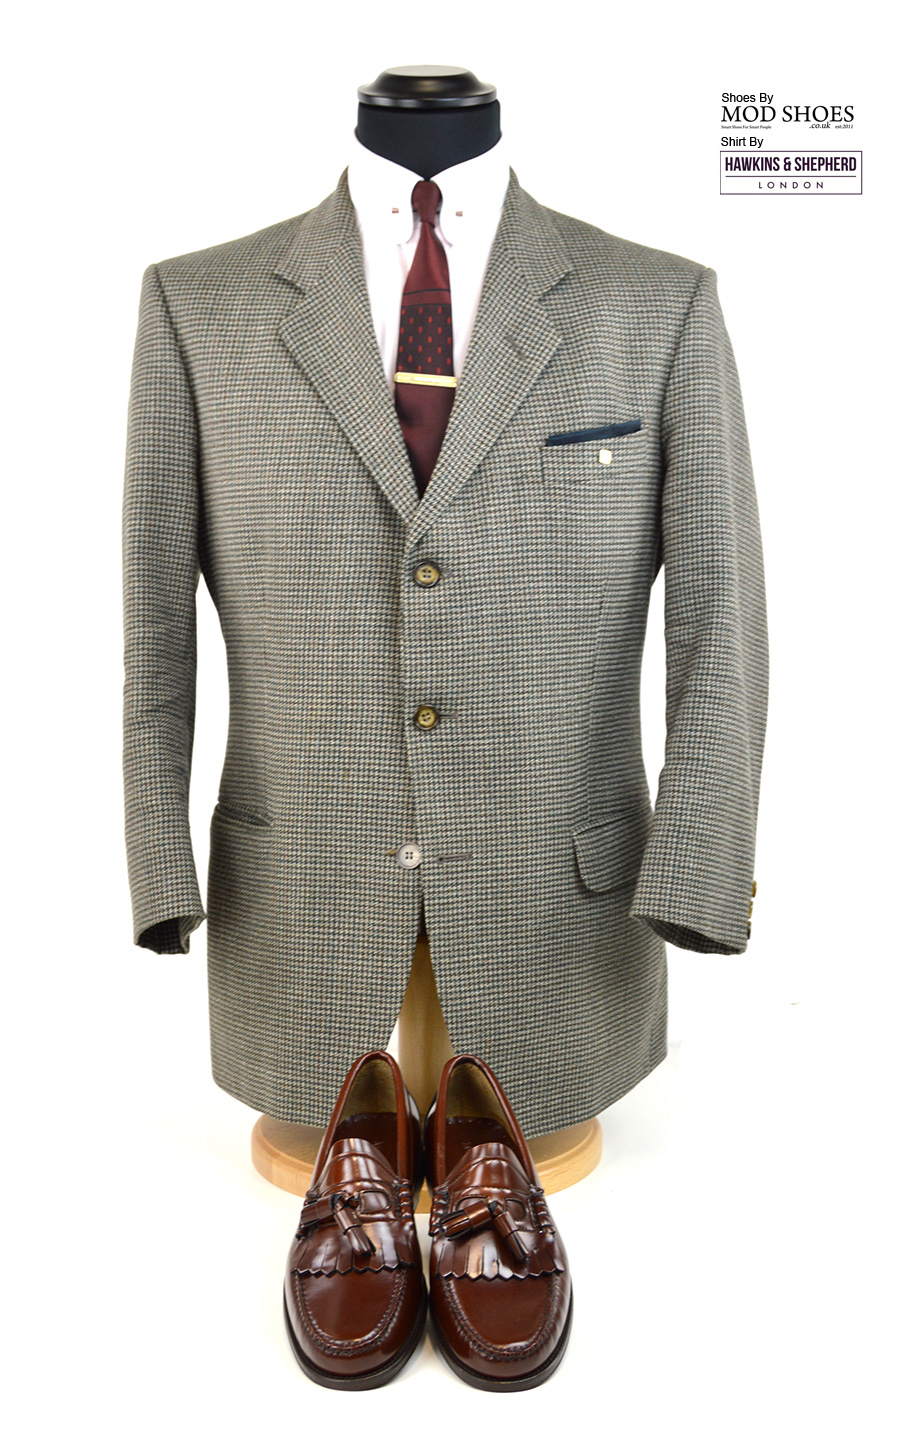 modshoes-tassel-loafers-the-dukes-in-chestnut-with-hawkins-pin-collar-shirt